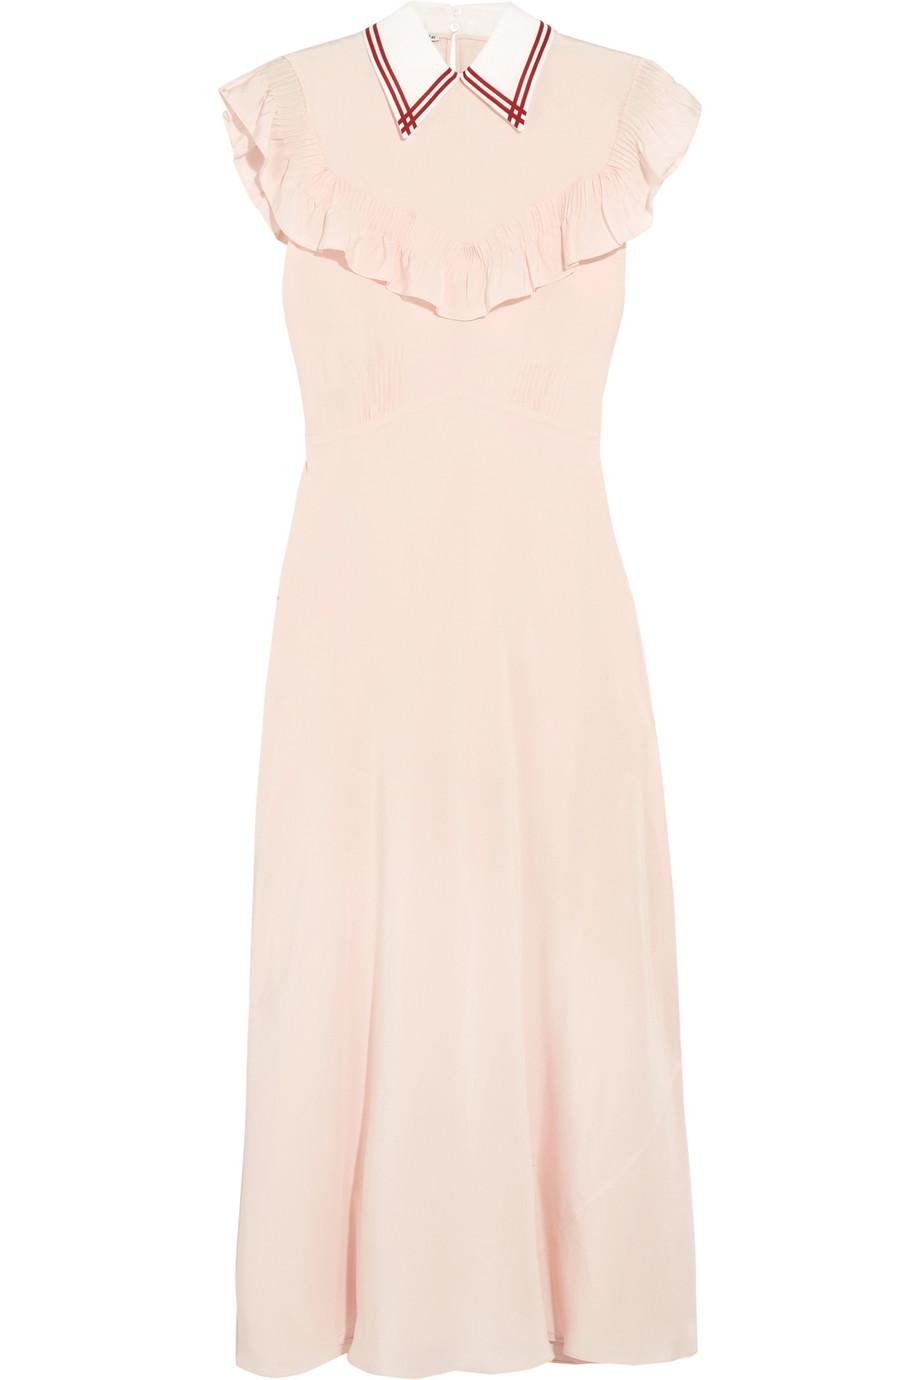 d6de58410cf56 Miu Miu Ruffled Silk Crepe De Chine Midi Dress in Pink - Lyst